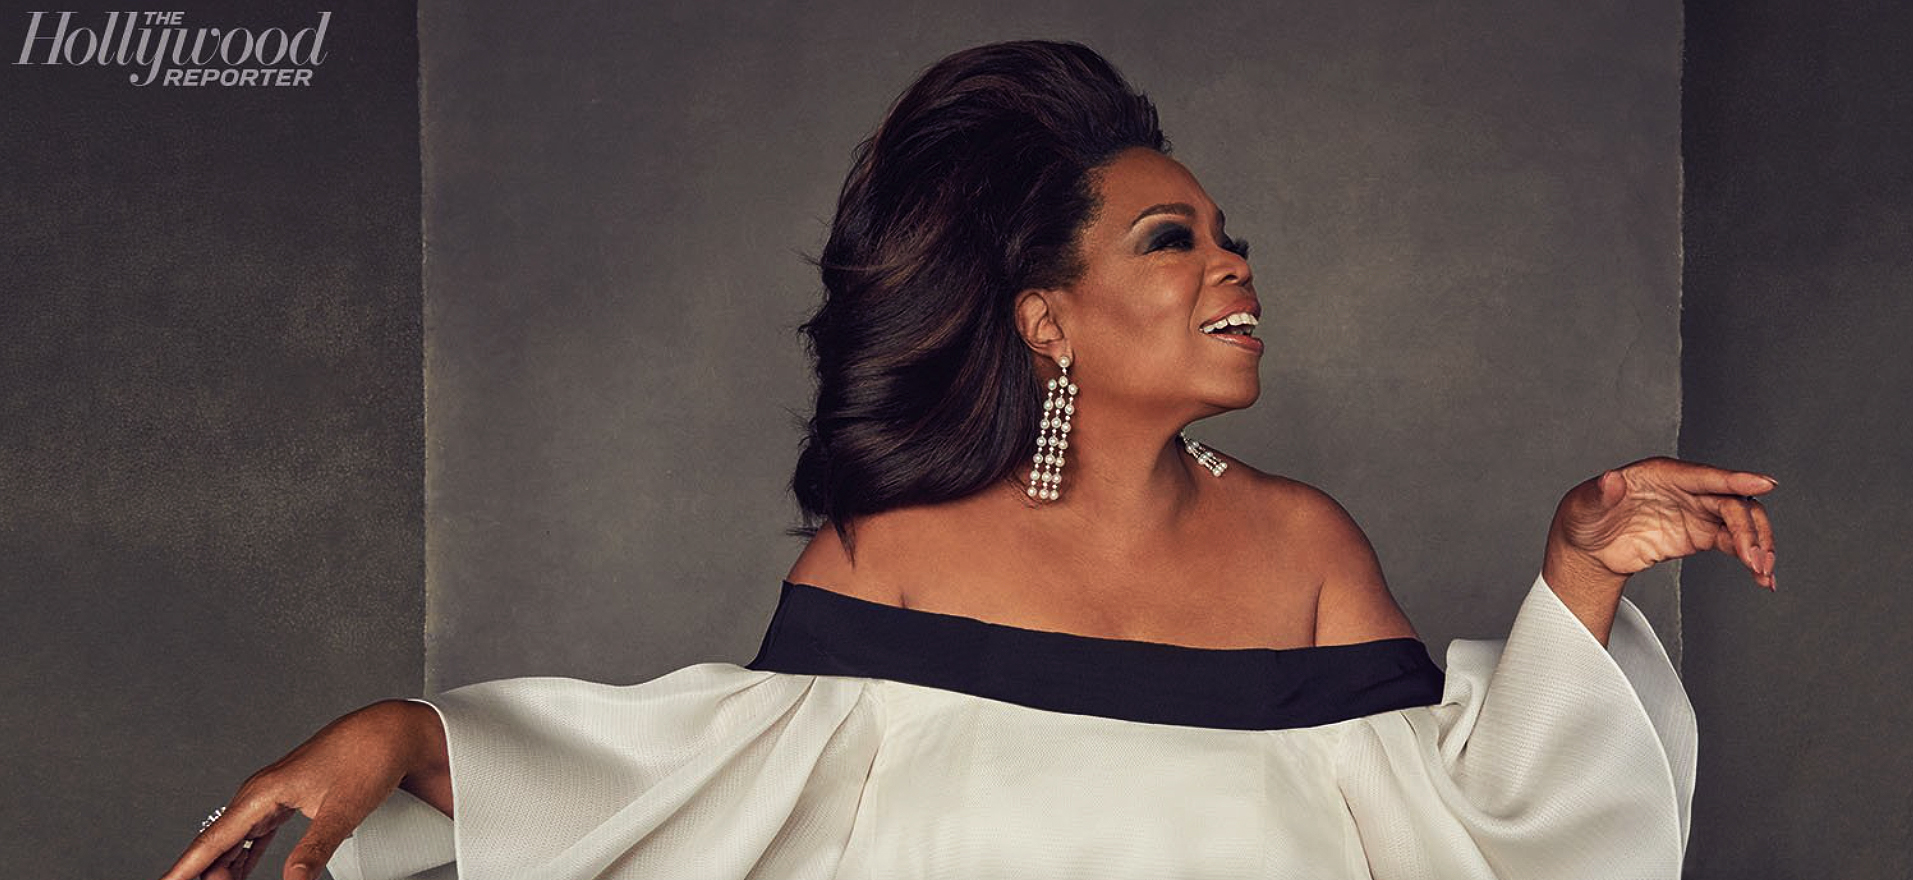 OPRAH WINFREY-Stunning-HOLLYWOOD REPORTER Editorial-Make Up by Derrick Rutledge.jpg